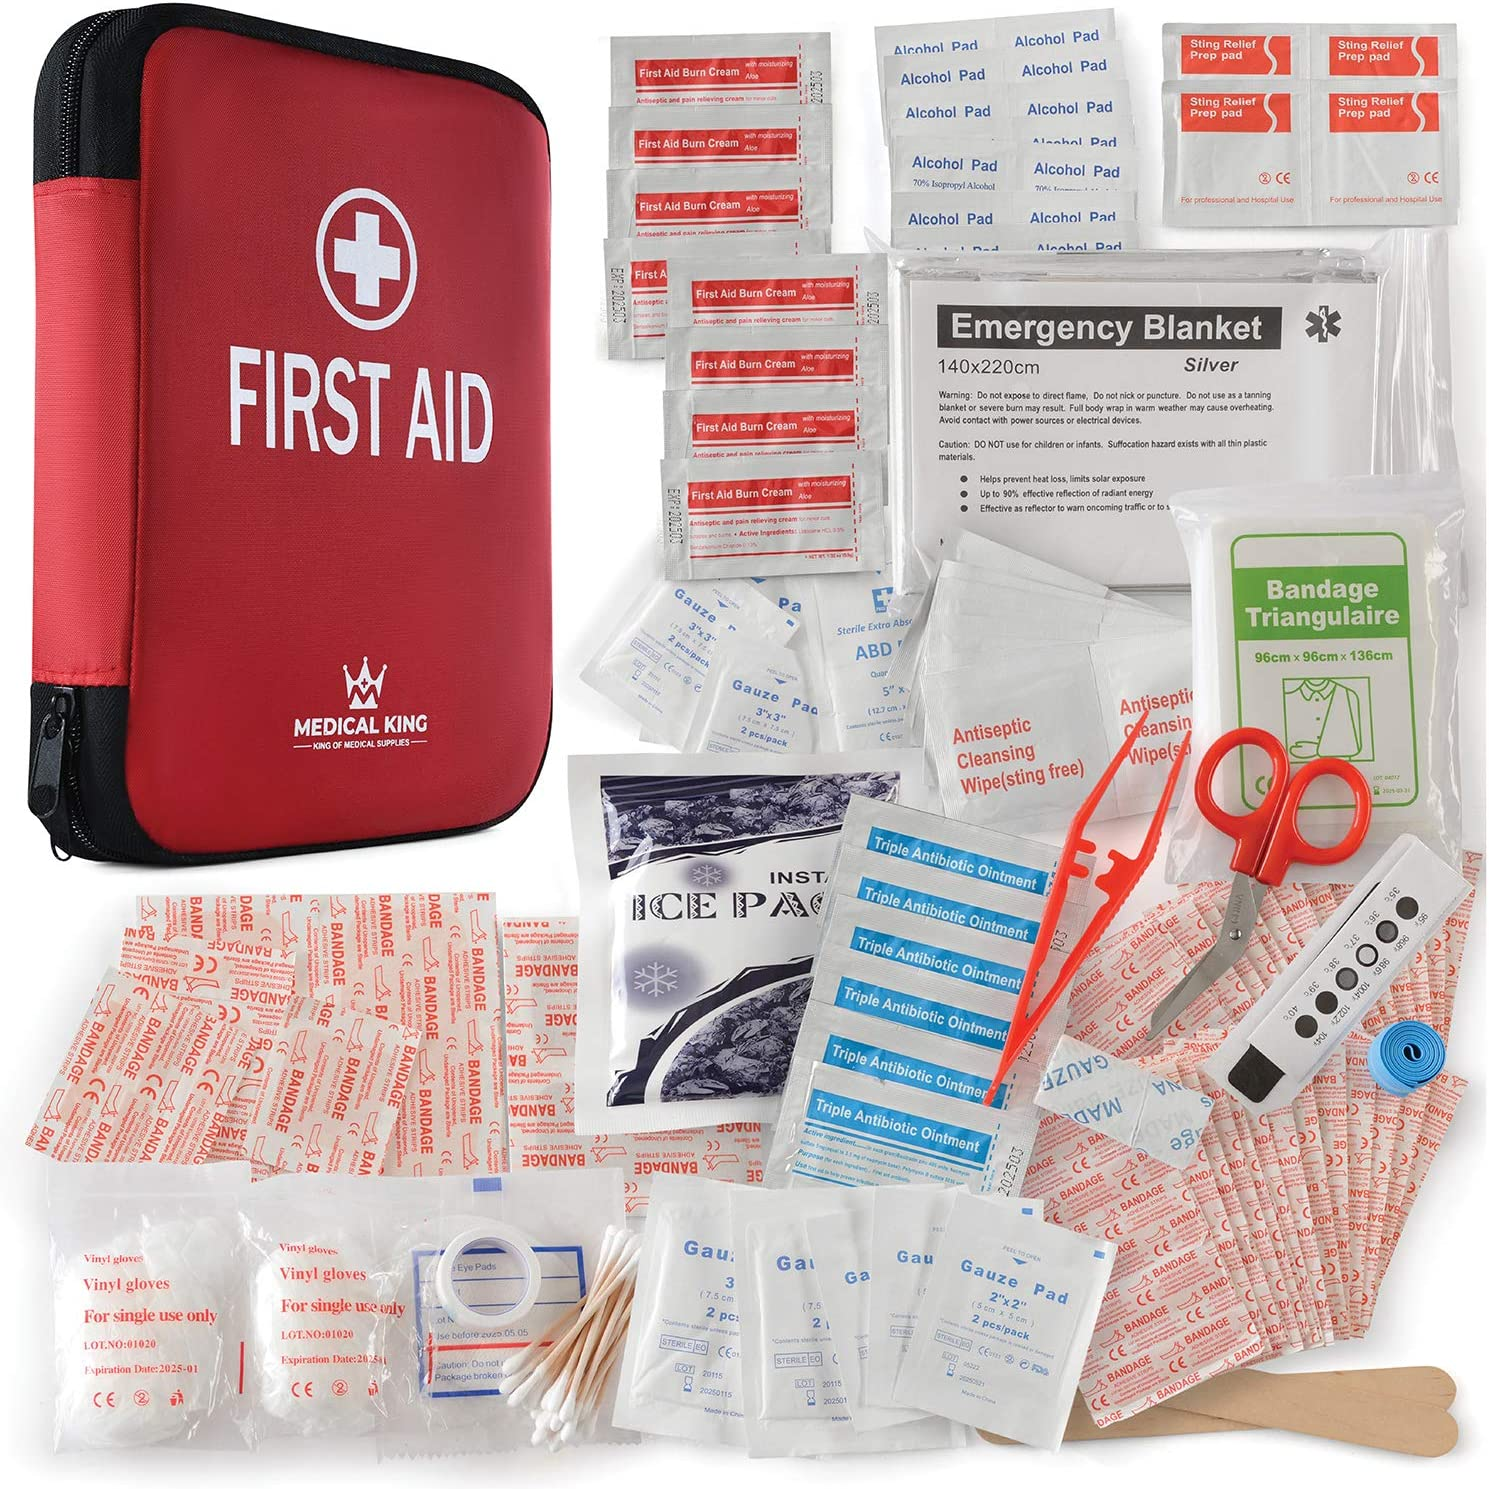 First aid kit 360 pcs, All-Purpose First aid Supplies - Medical kit Protect for Most Injuries - Travel First aid kit, Great for for Home or Work, Plus Supplies for Camping, Outdoor Emergencies & More